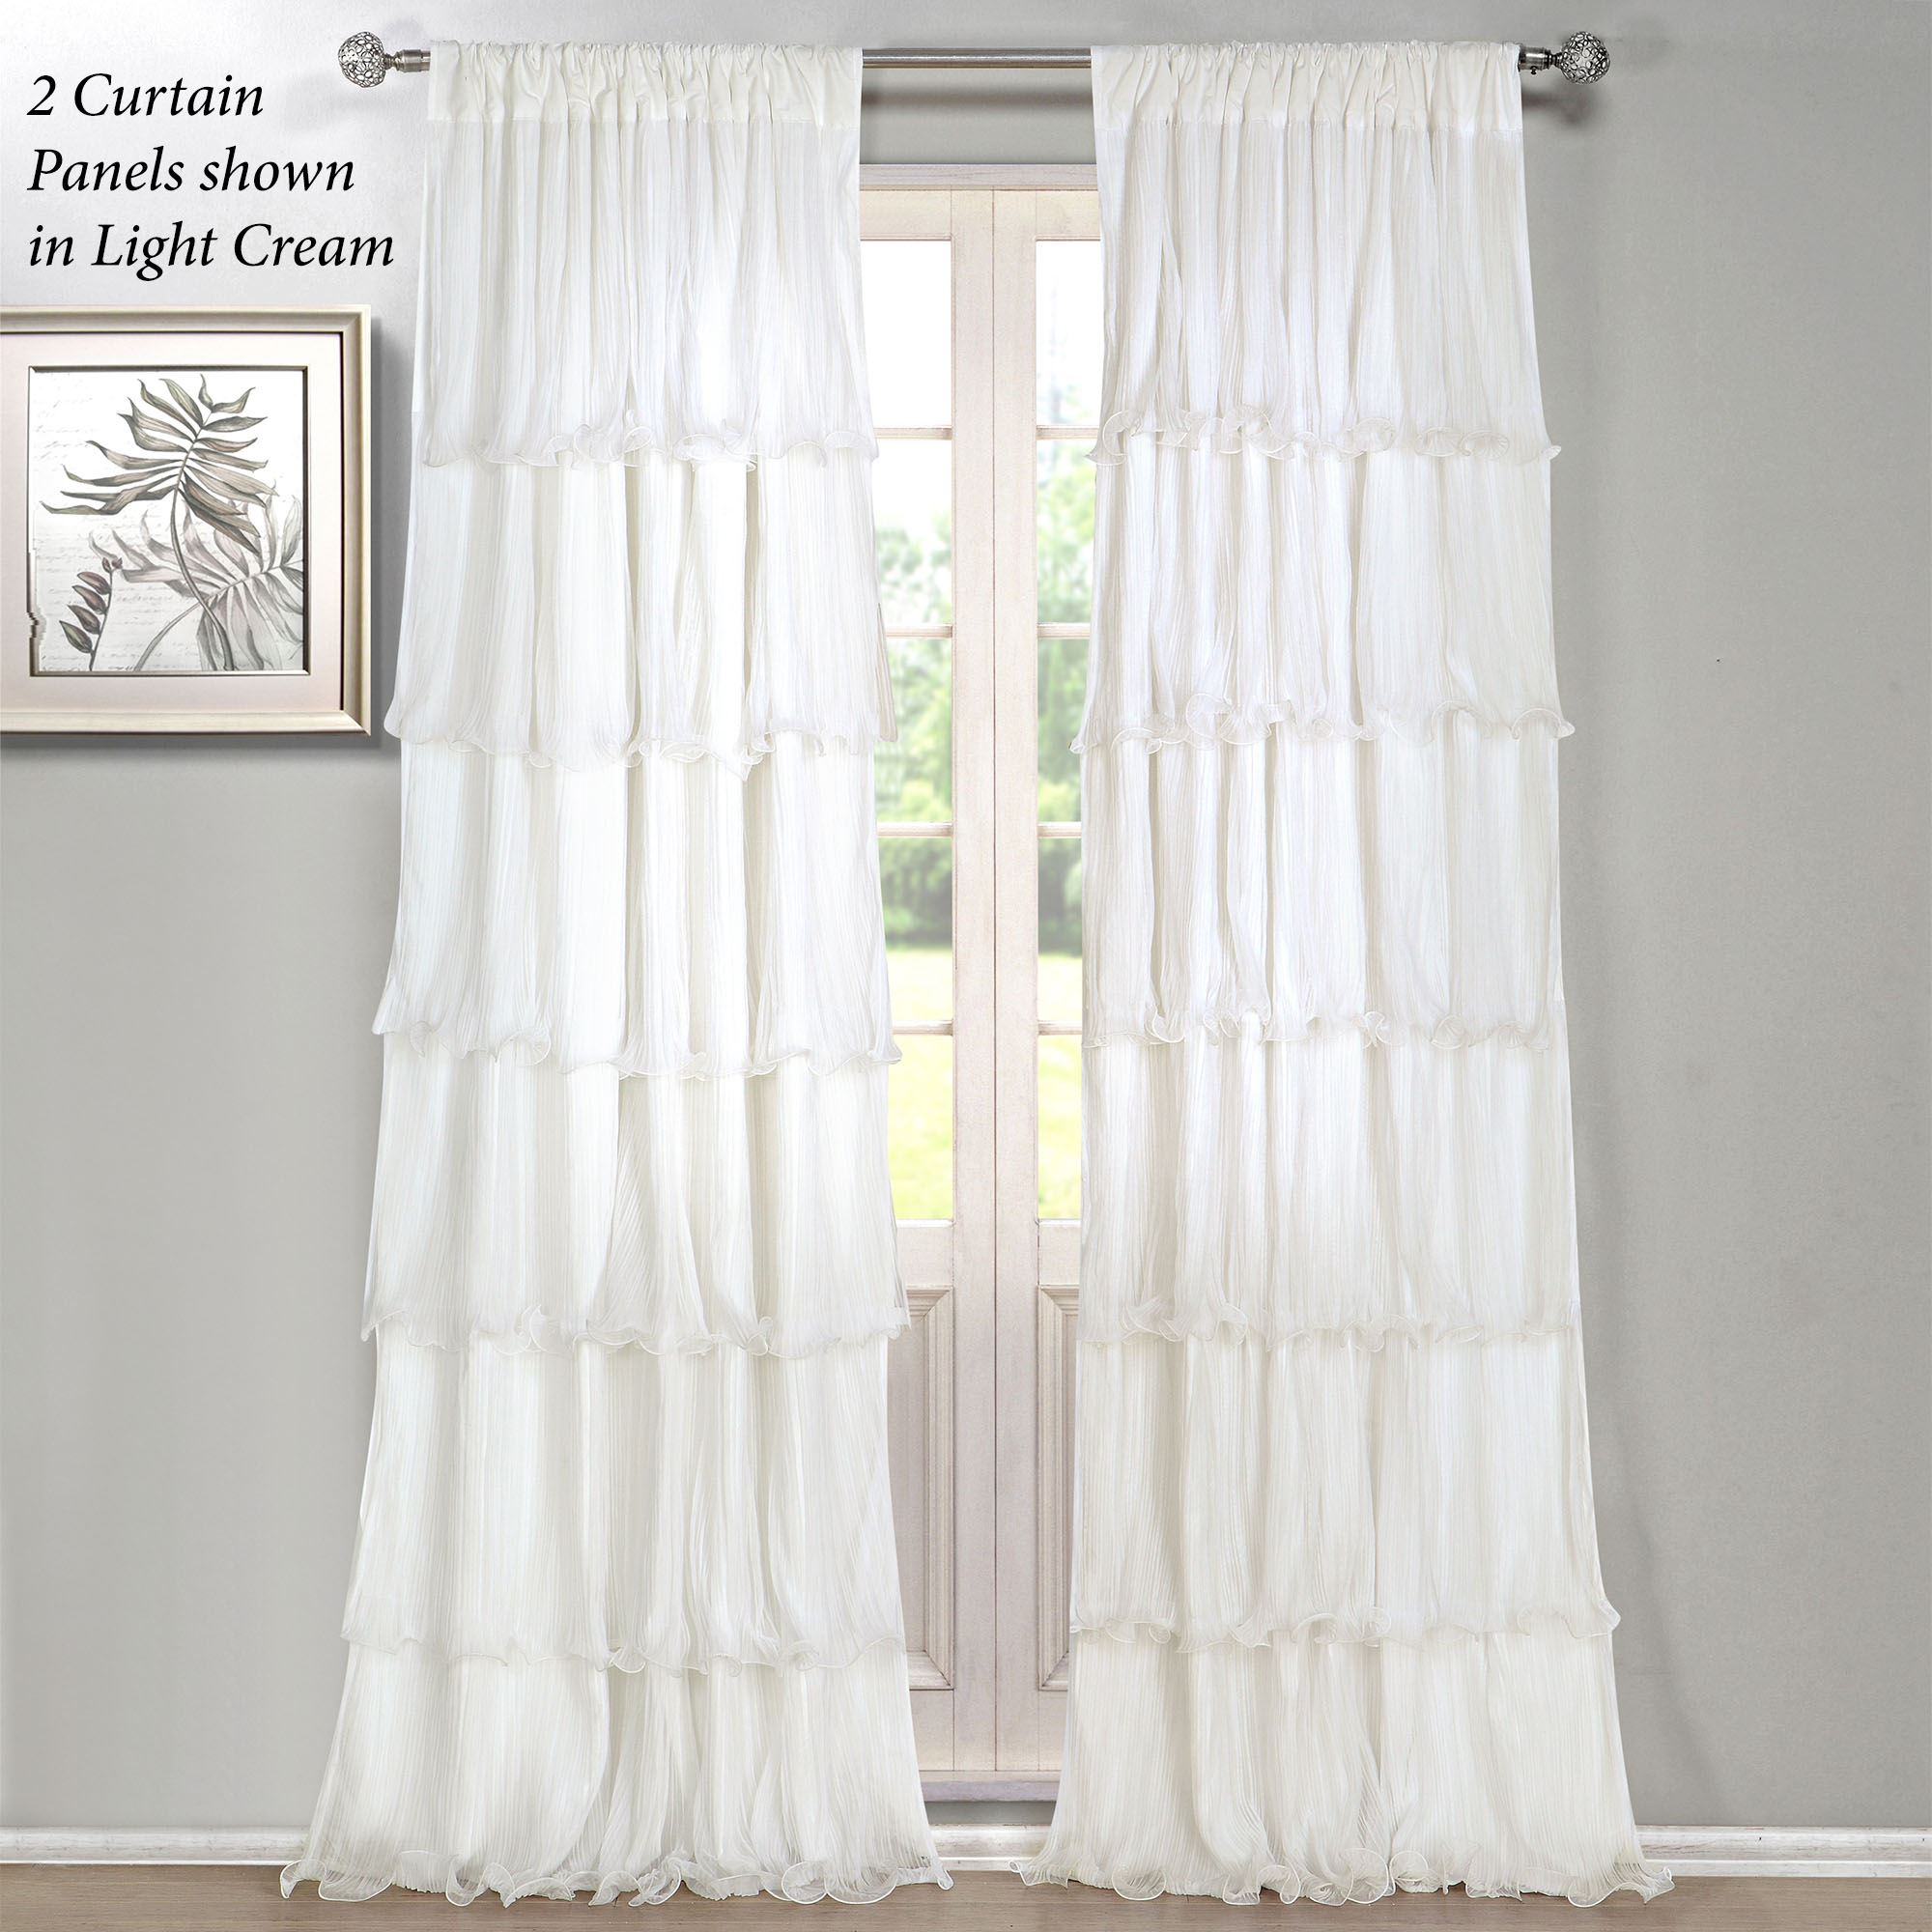 Ruffle Curtain Panel Festival Pleated Ruffled Curtain Panels